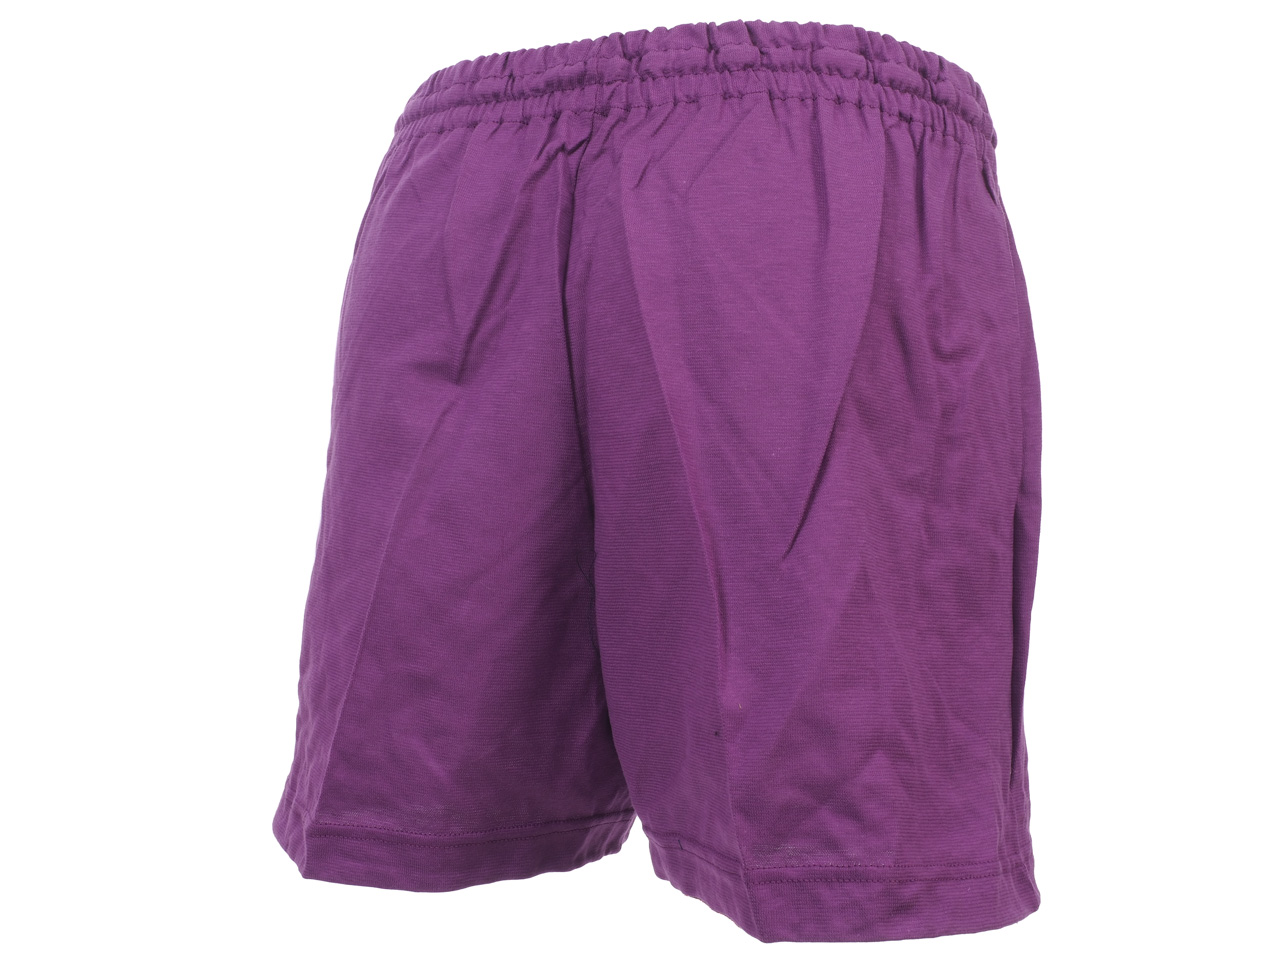 Shorts-Multi-Panzeri-Plain-a-Purple-Jersey-Shorts-Purple-30929-New thumbnail 5